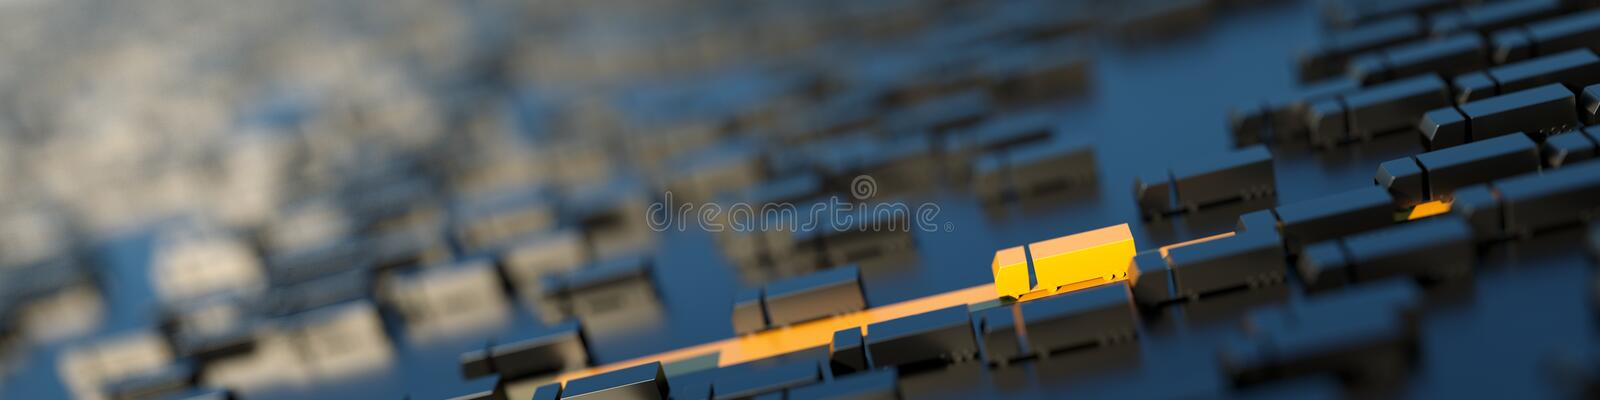 Logistics industry concepts royalty free stock images